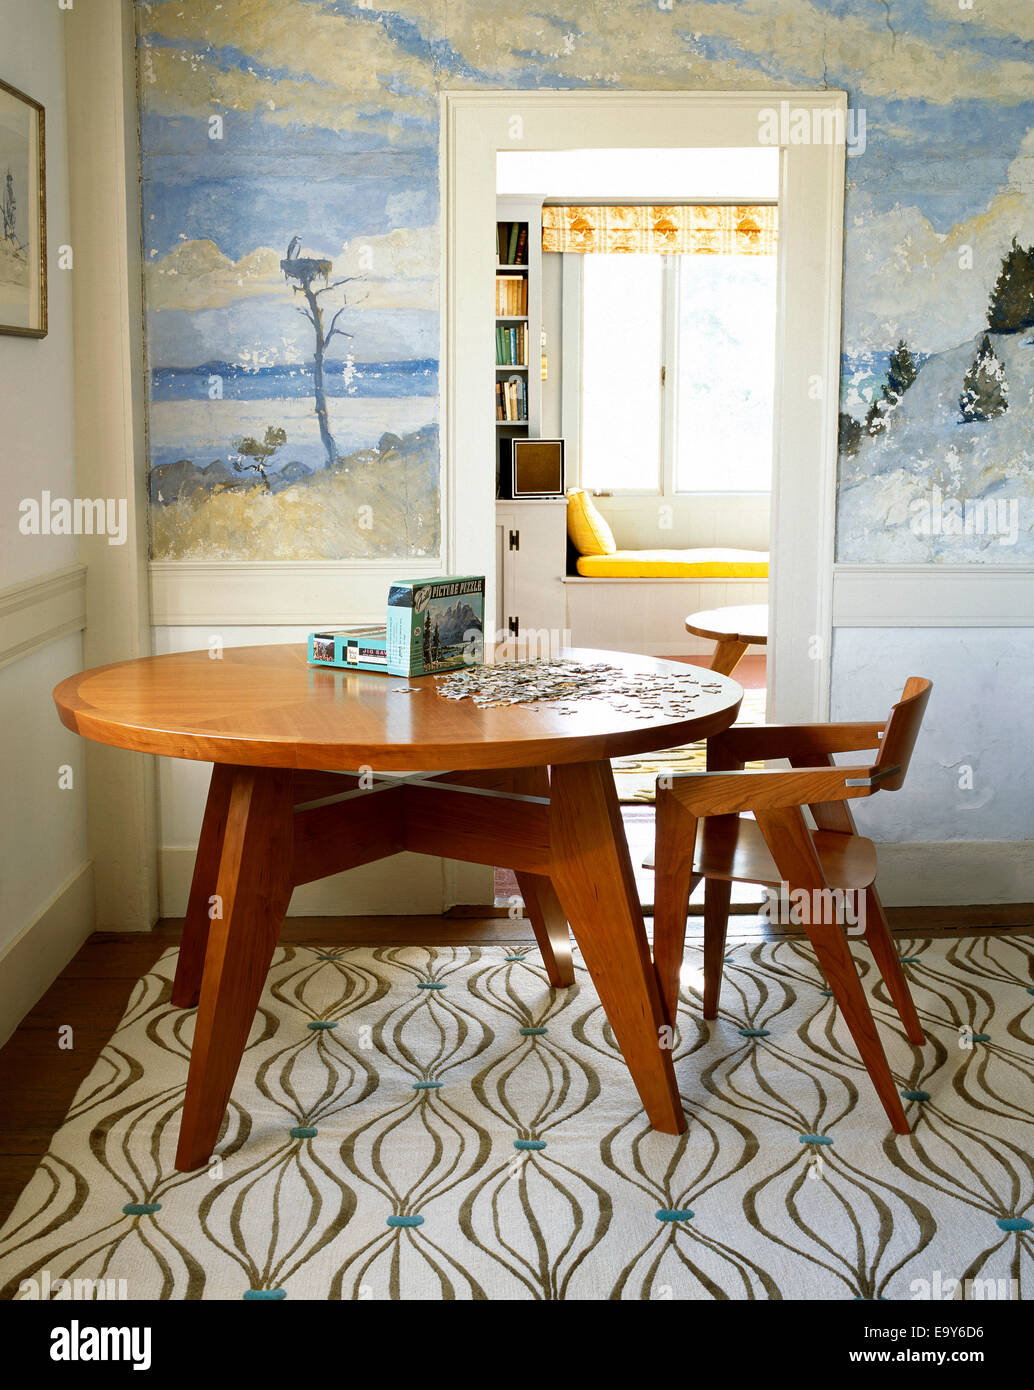 dining room table with picture puzzle - Stock Image